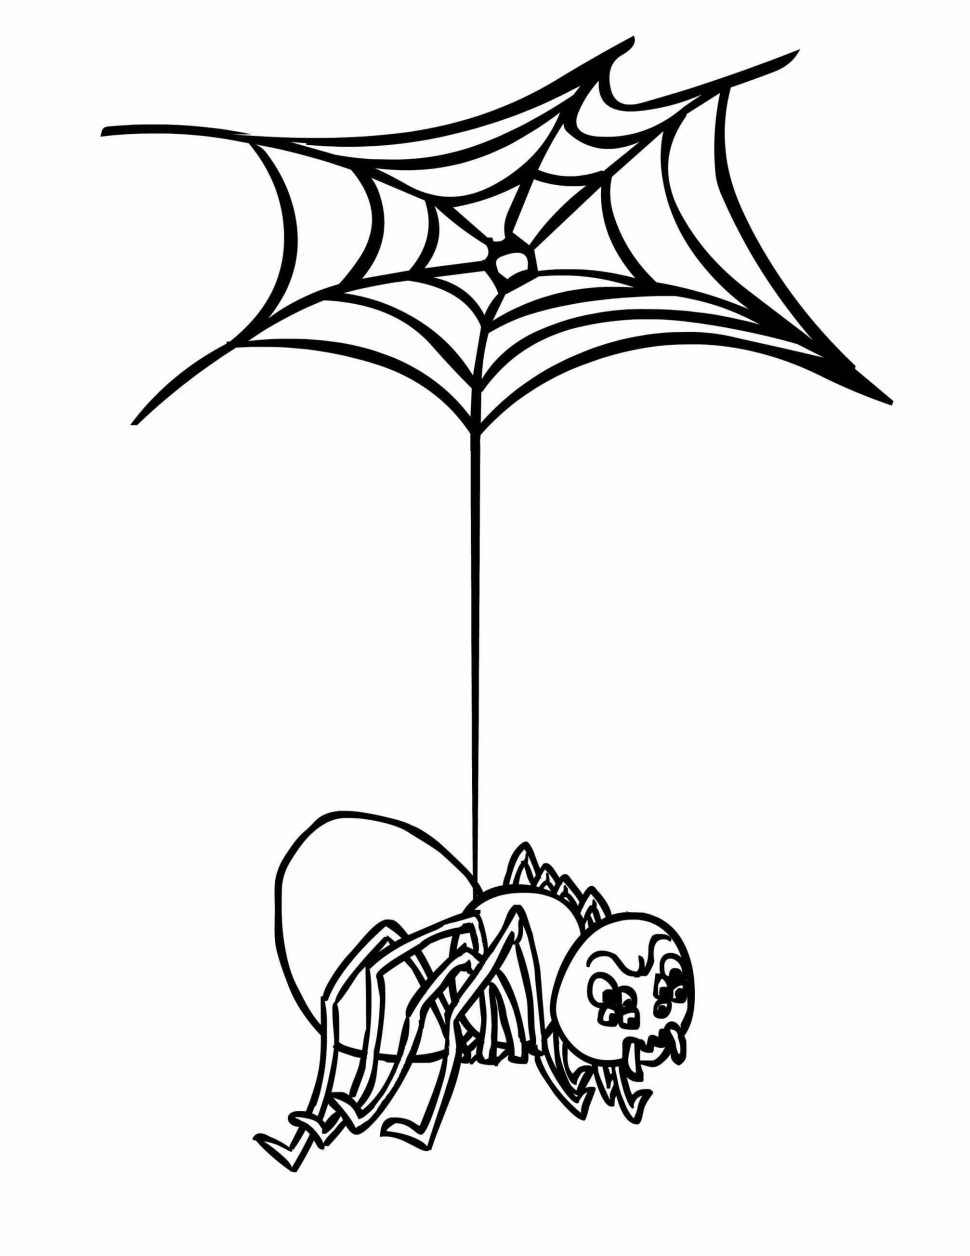 970x1256 Coloring Pages Spider Web Coloring Page Spider Web Coloring Page